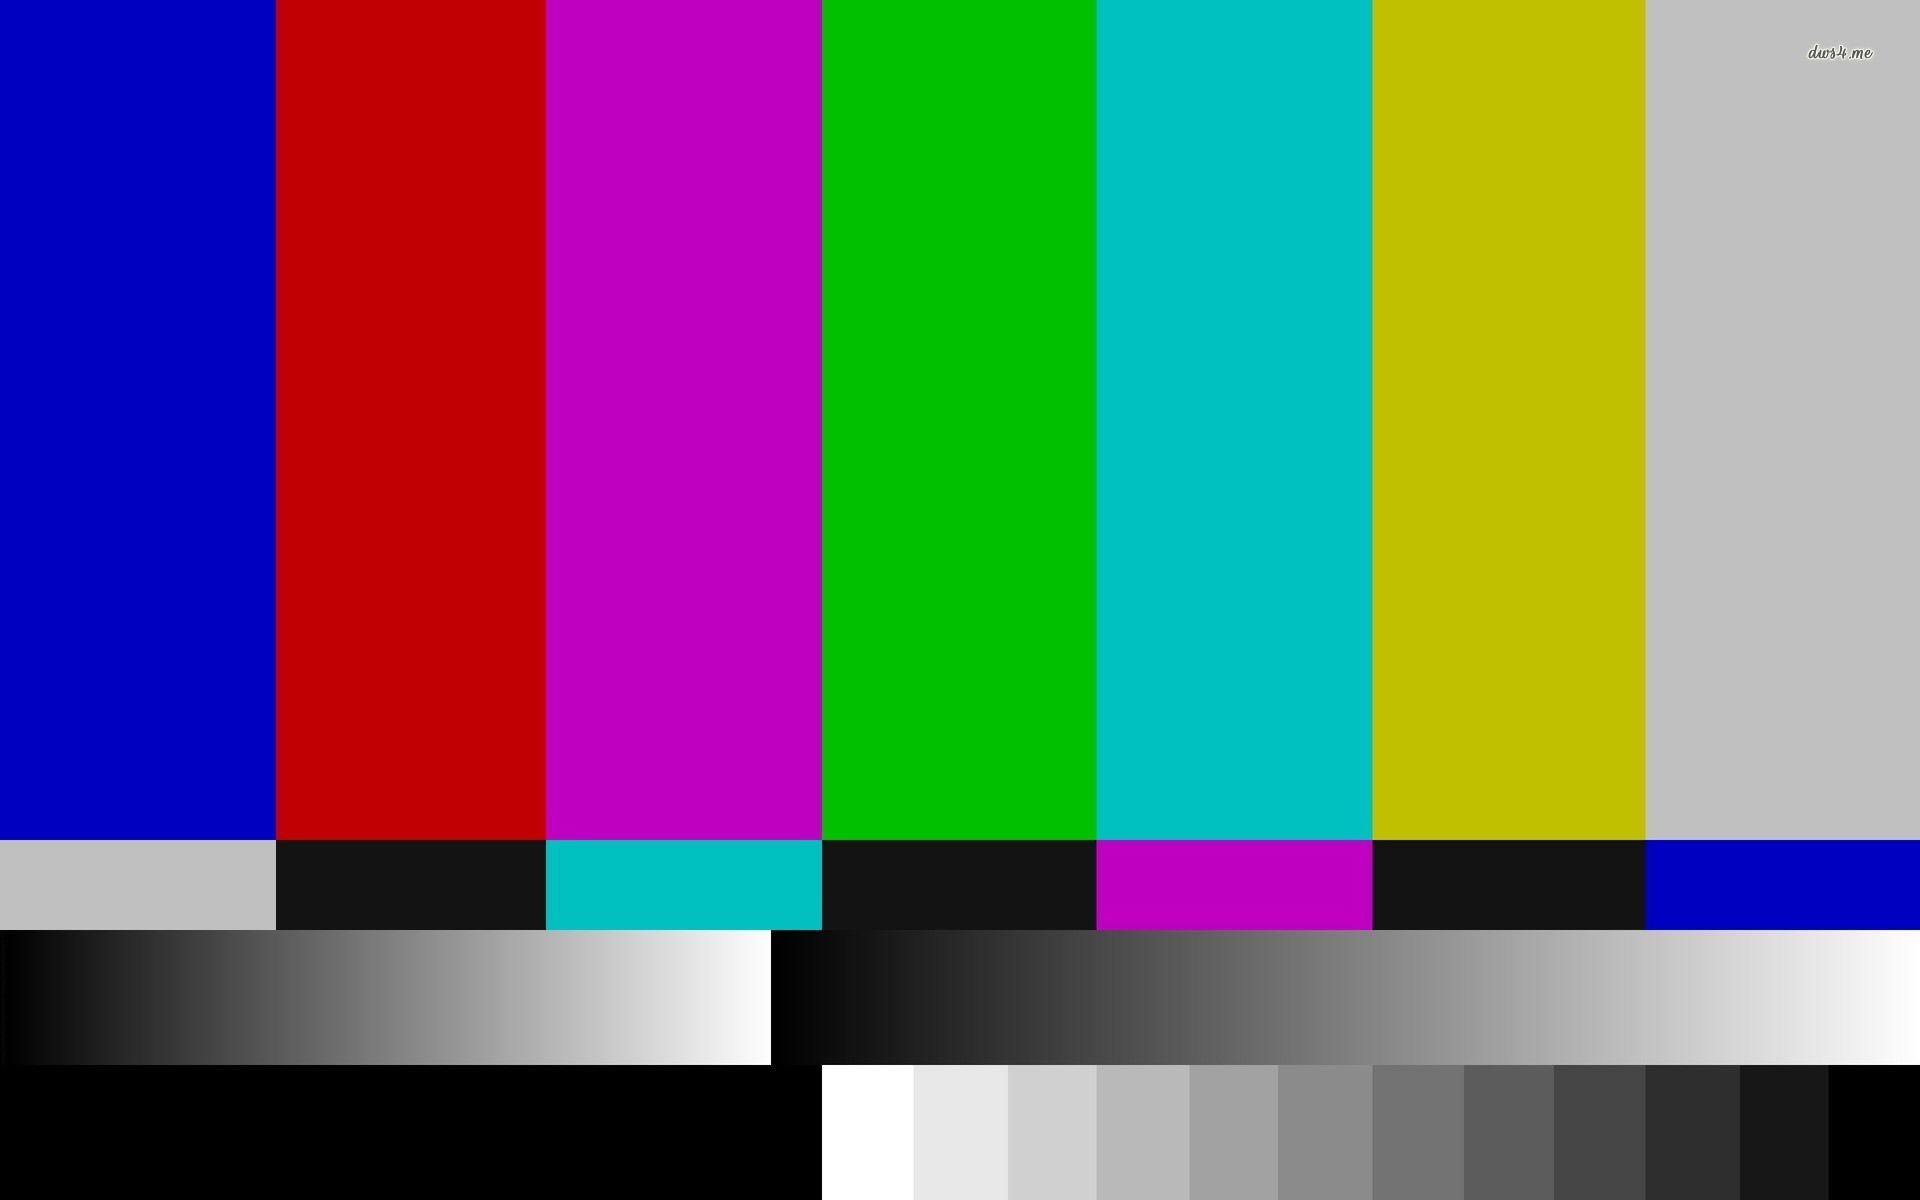 TV test pattern wallpaper – Abstract wallpapers – #15934